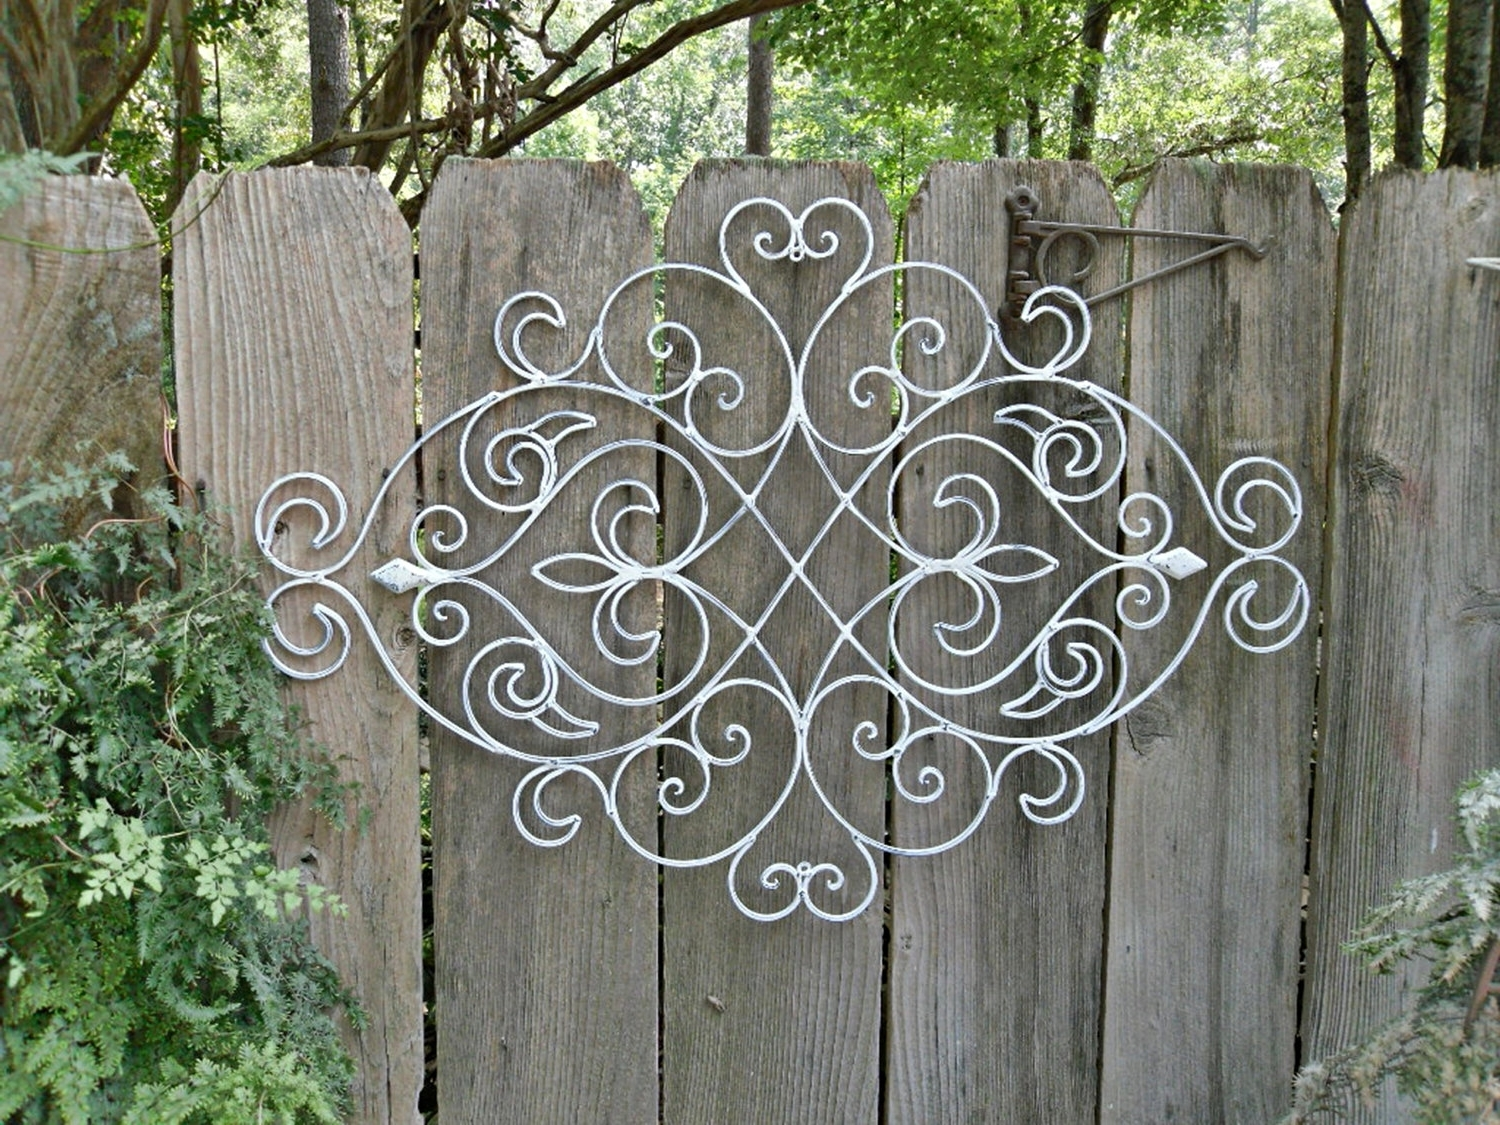 Newest Discount Outdoor Metal Wall Art Decor — Joanne Russo Homesjoanne Pertaining To Metal Wall Art For Outdoors (View 10 of 15)